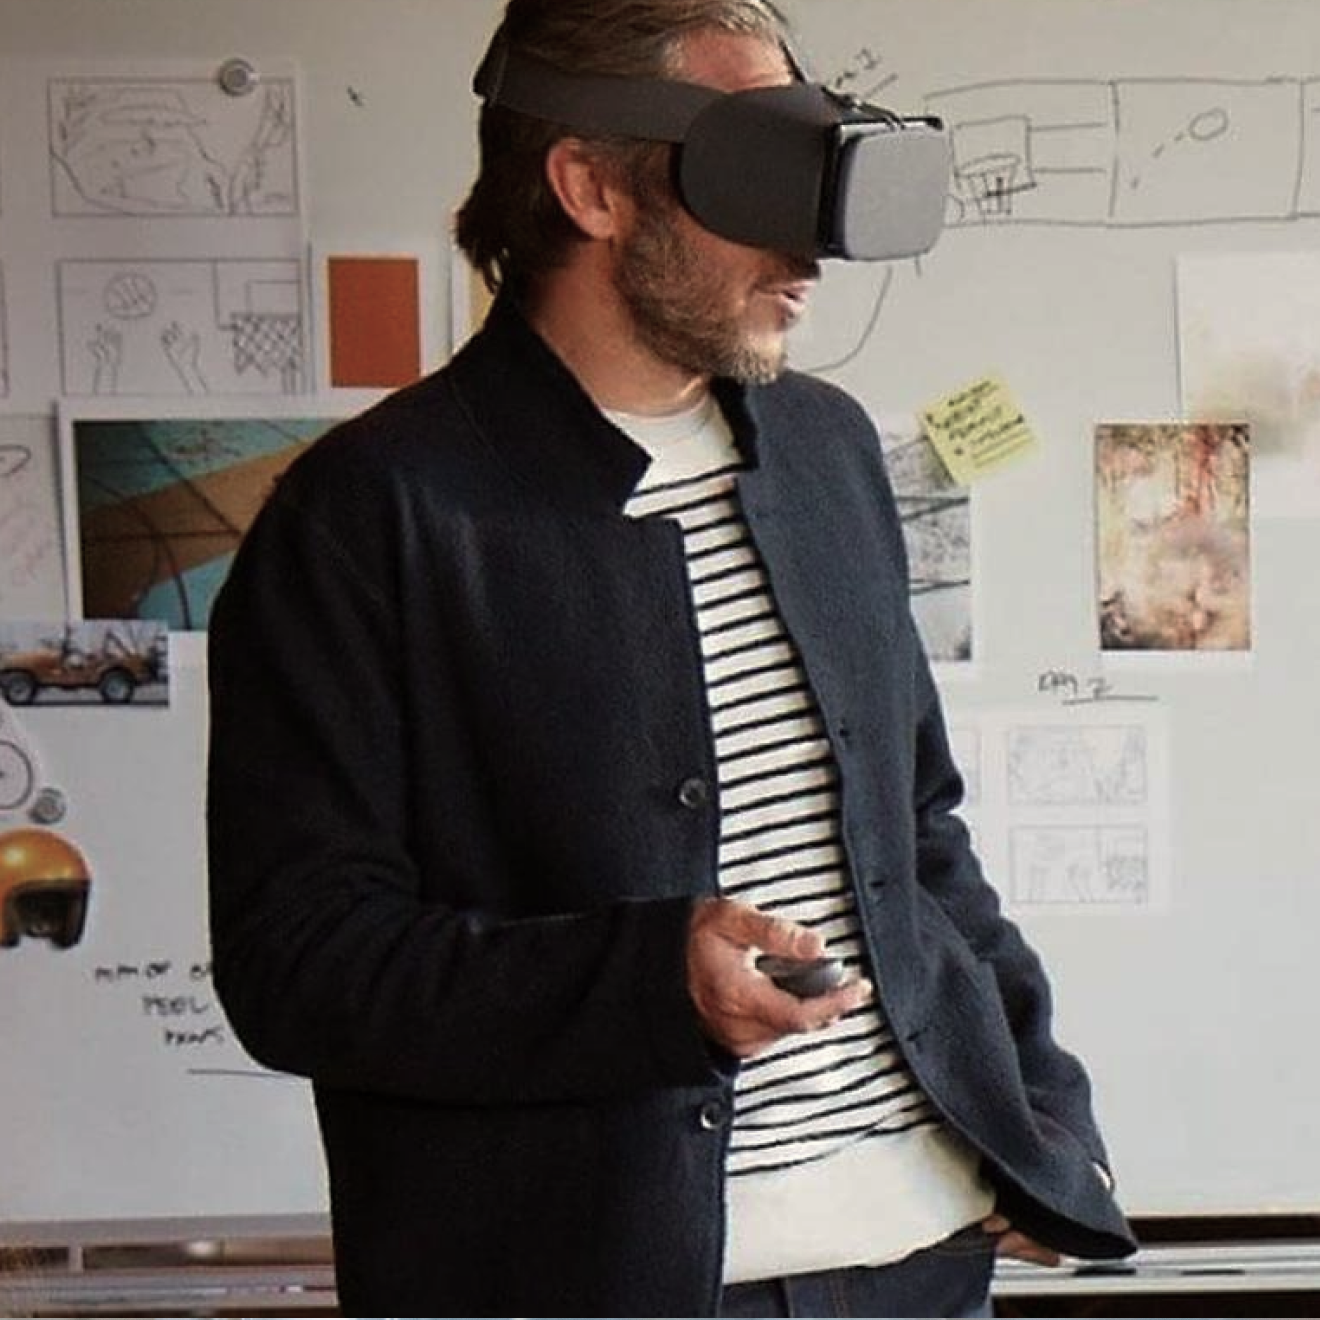 Person with a VR headset on